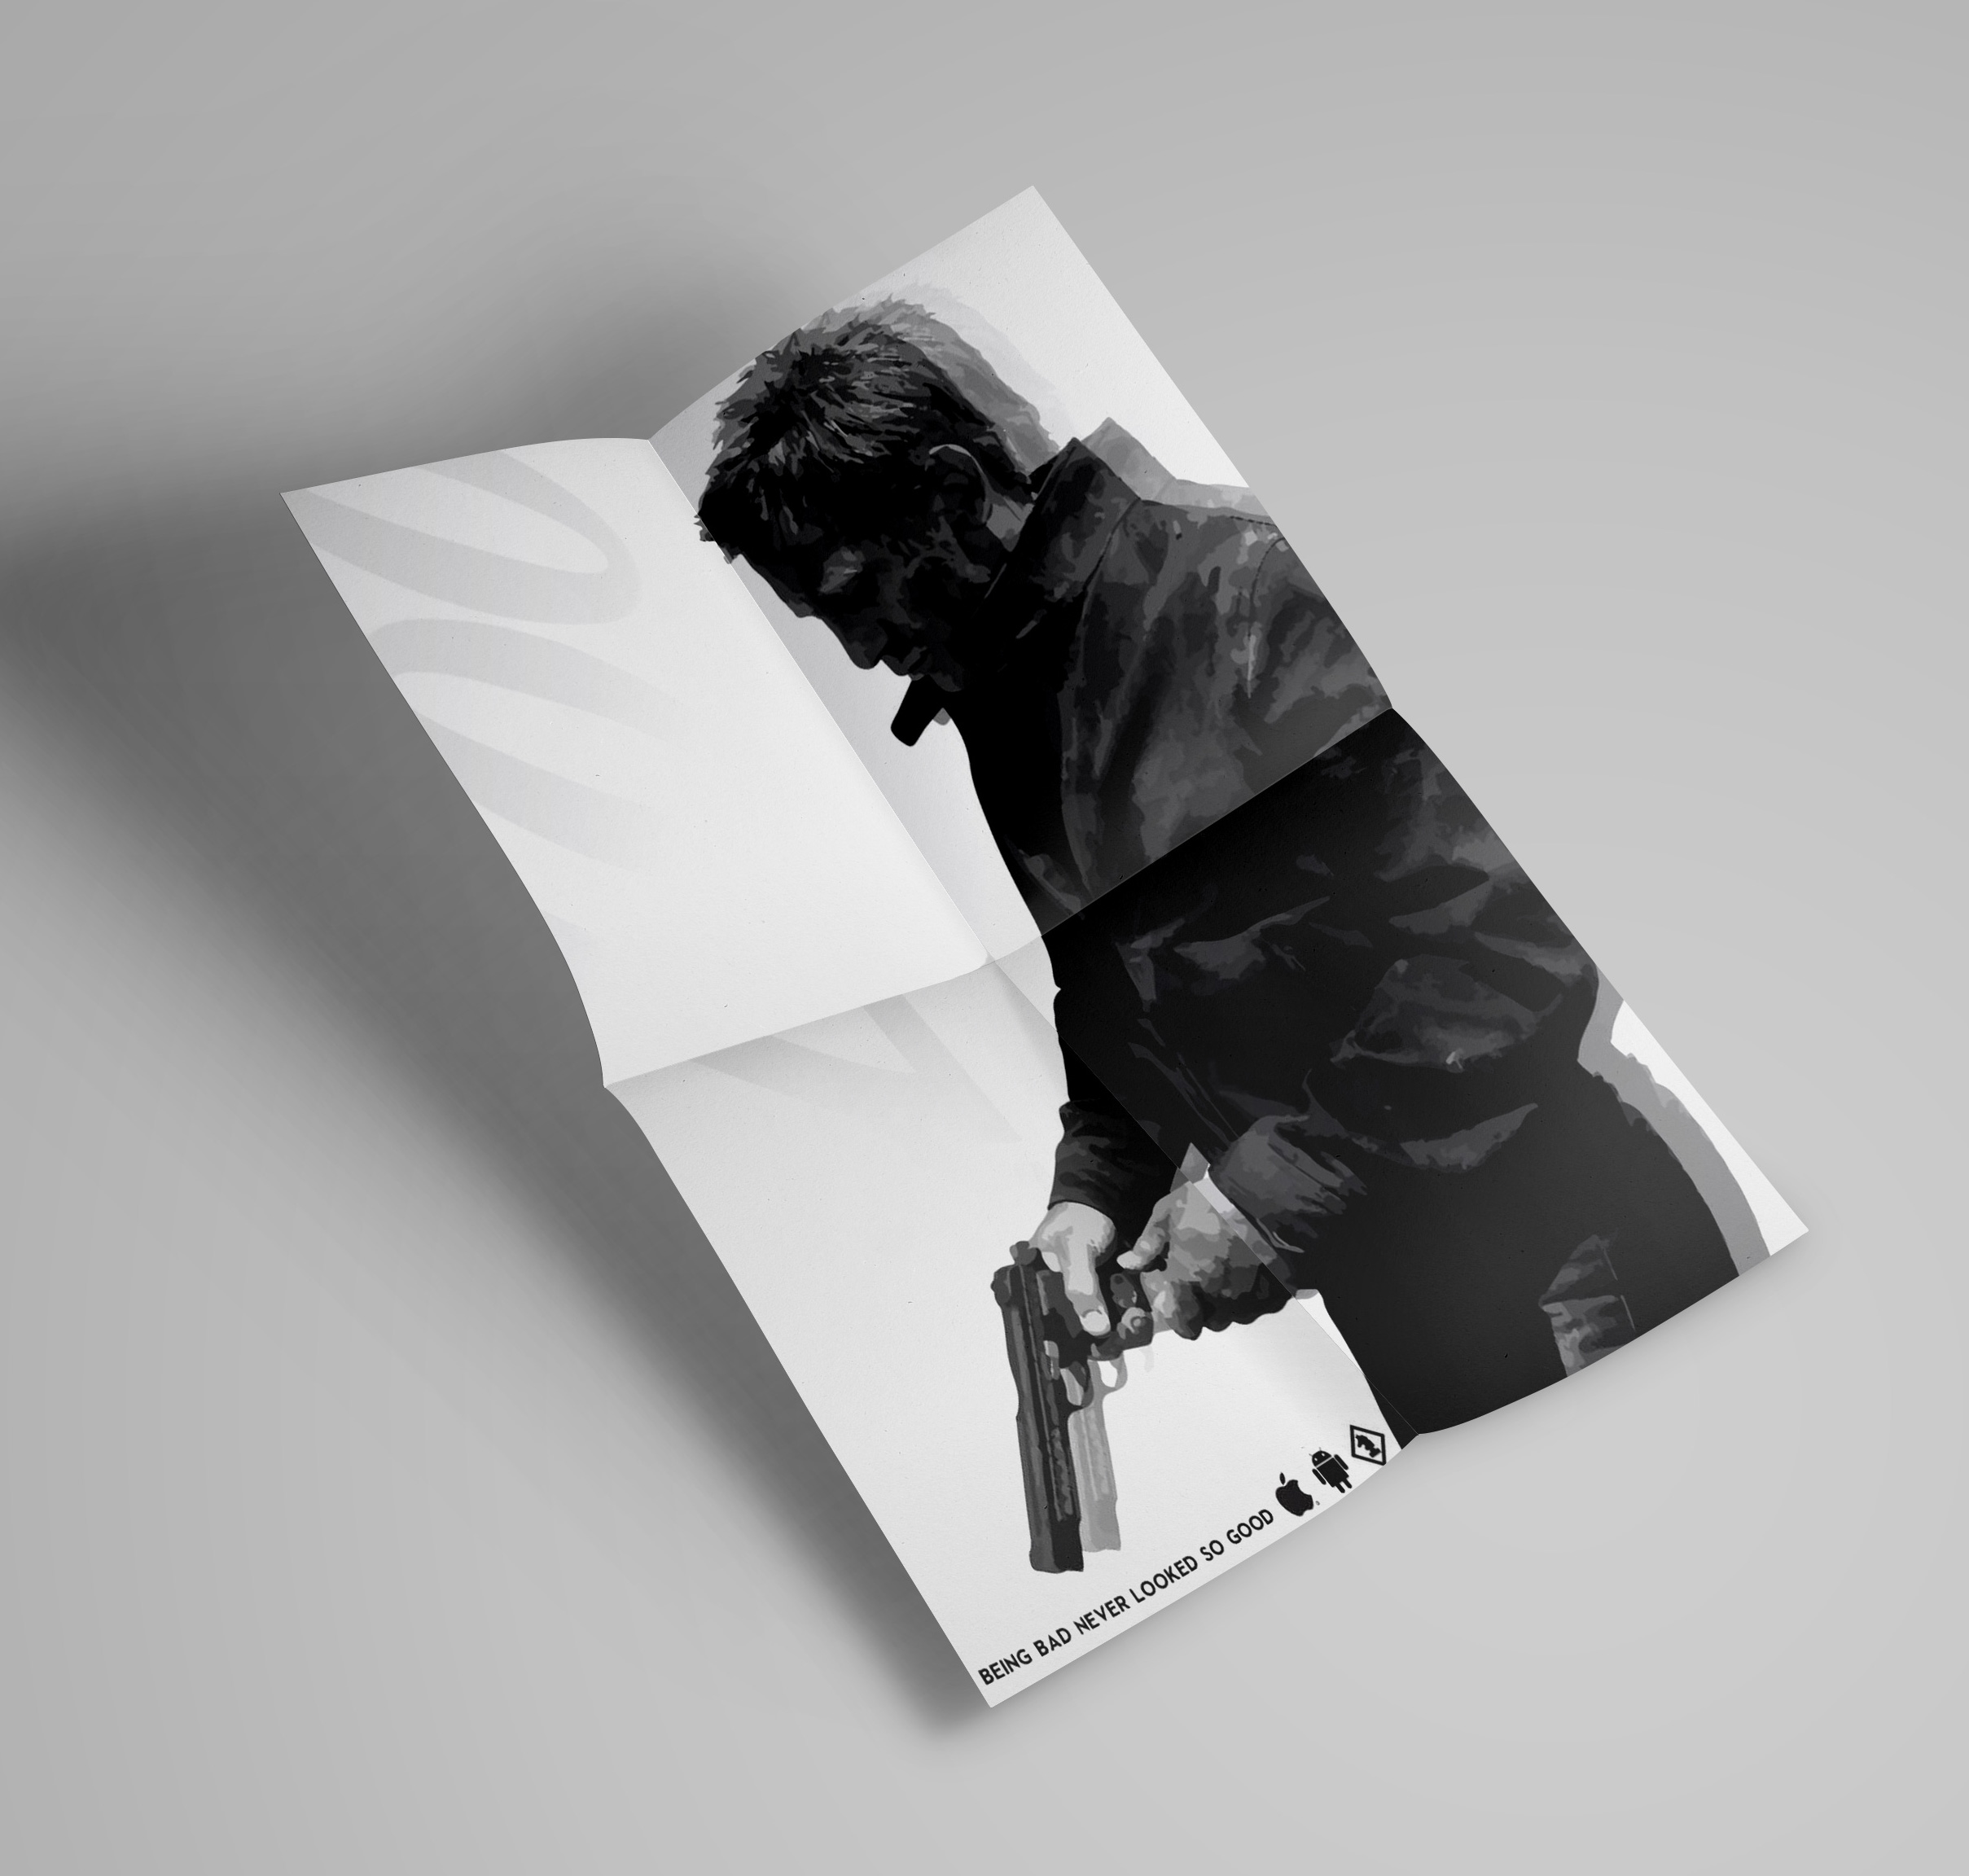 007 Rogue Posters